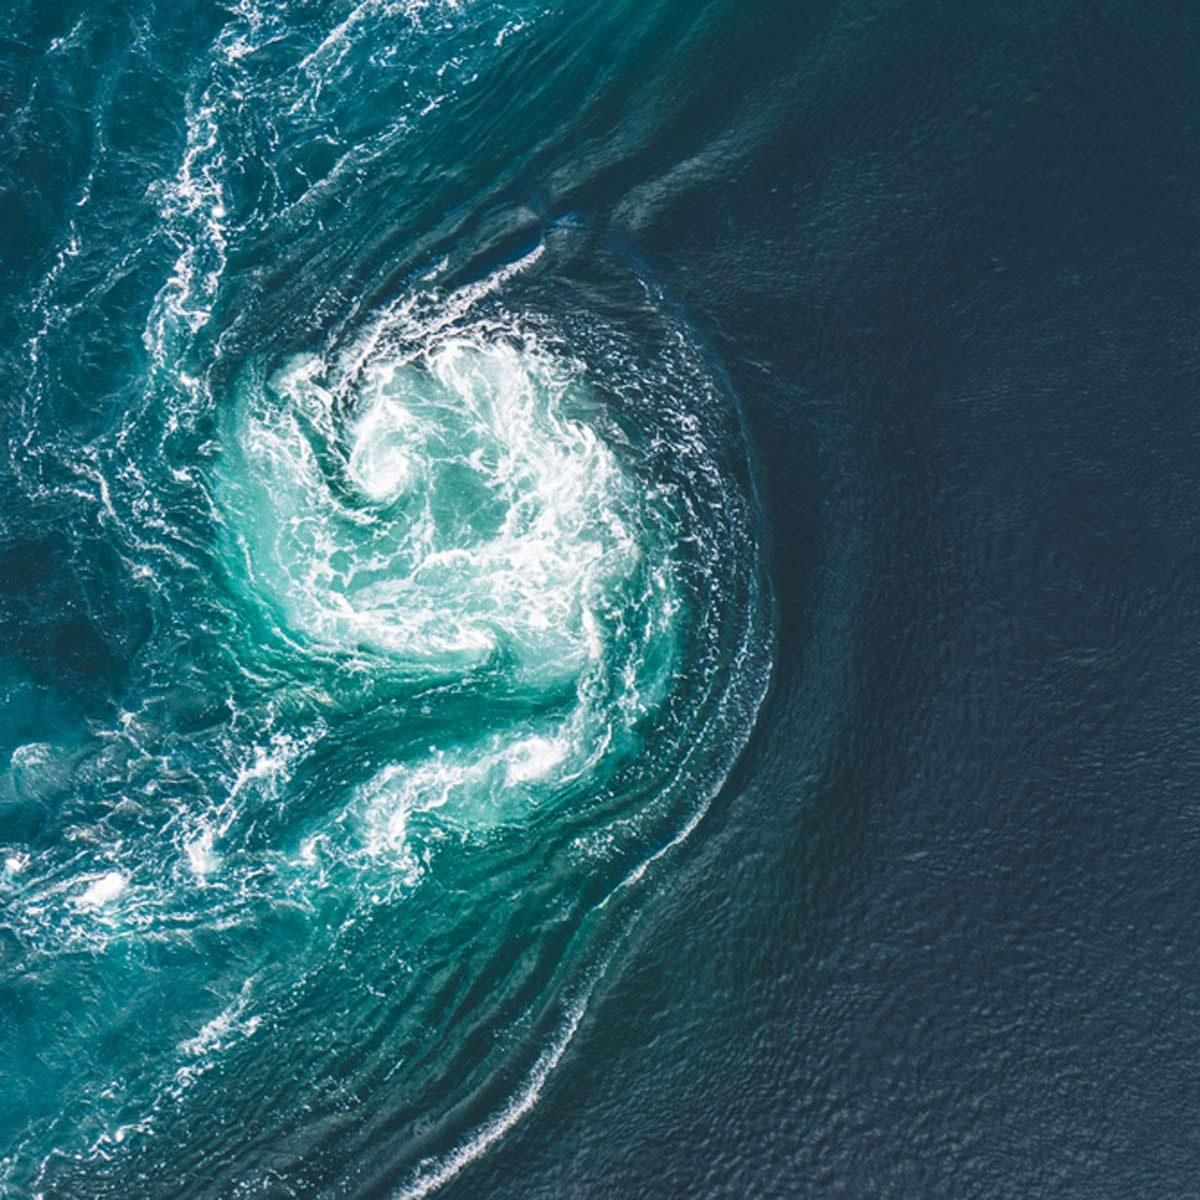 ocean current waves water swirl